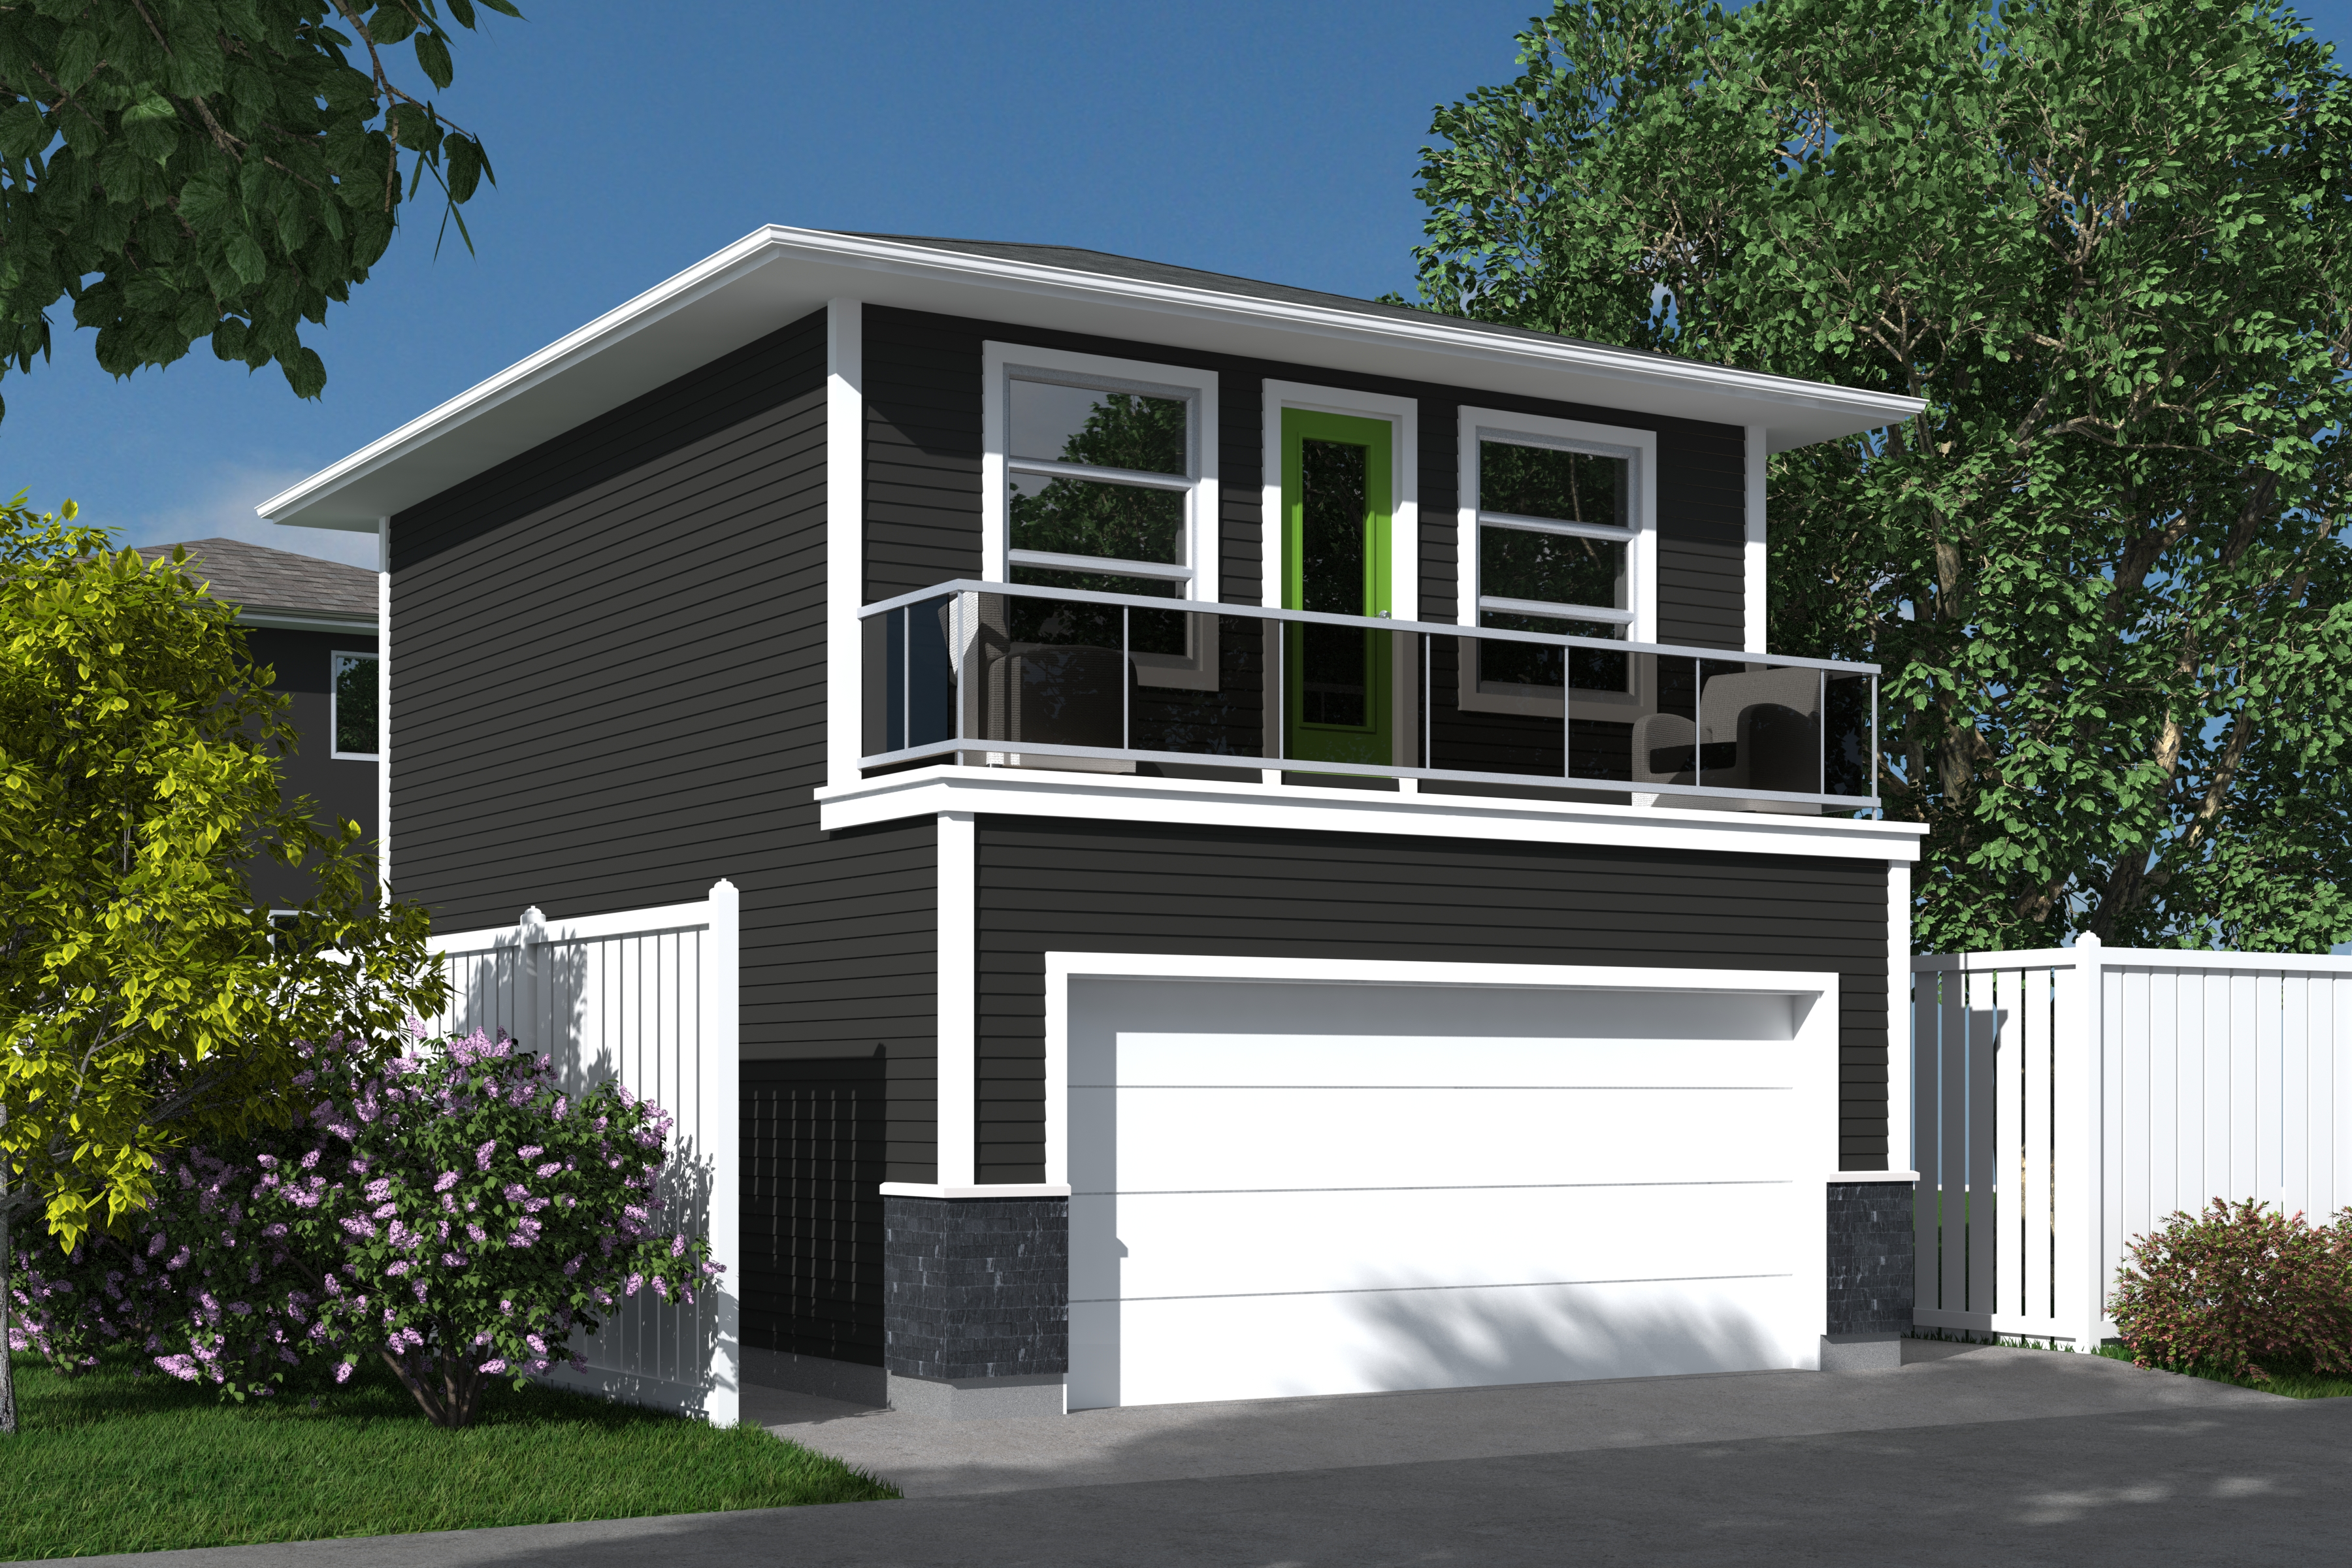 Contemporary viron 480 robinson plans for House plan with garage